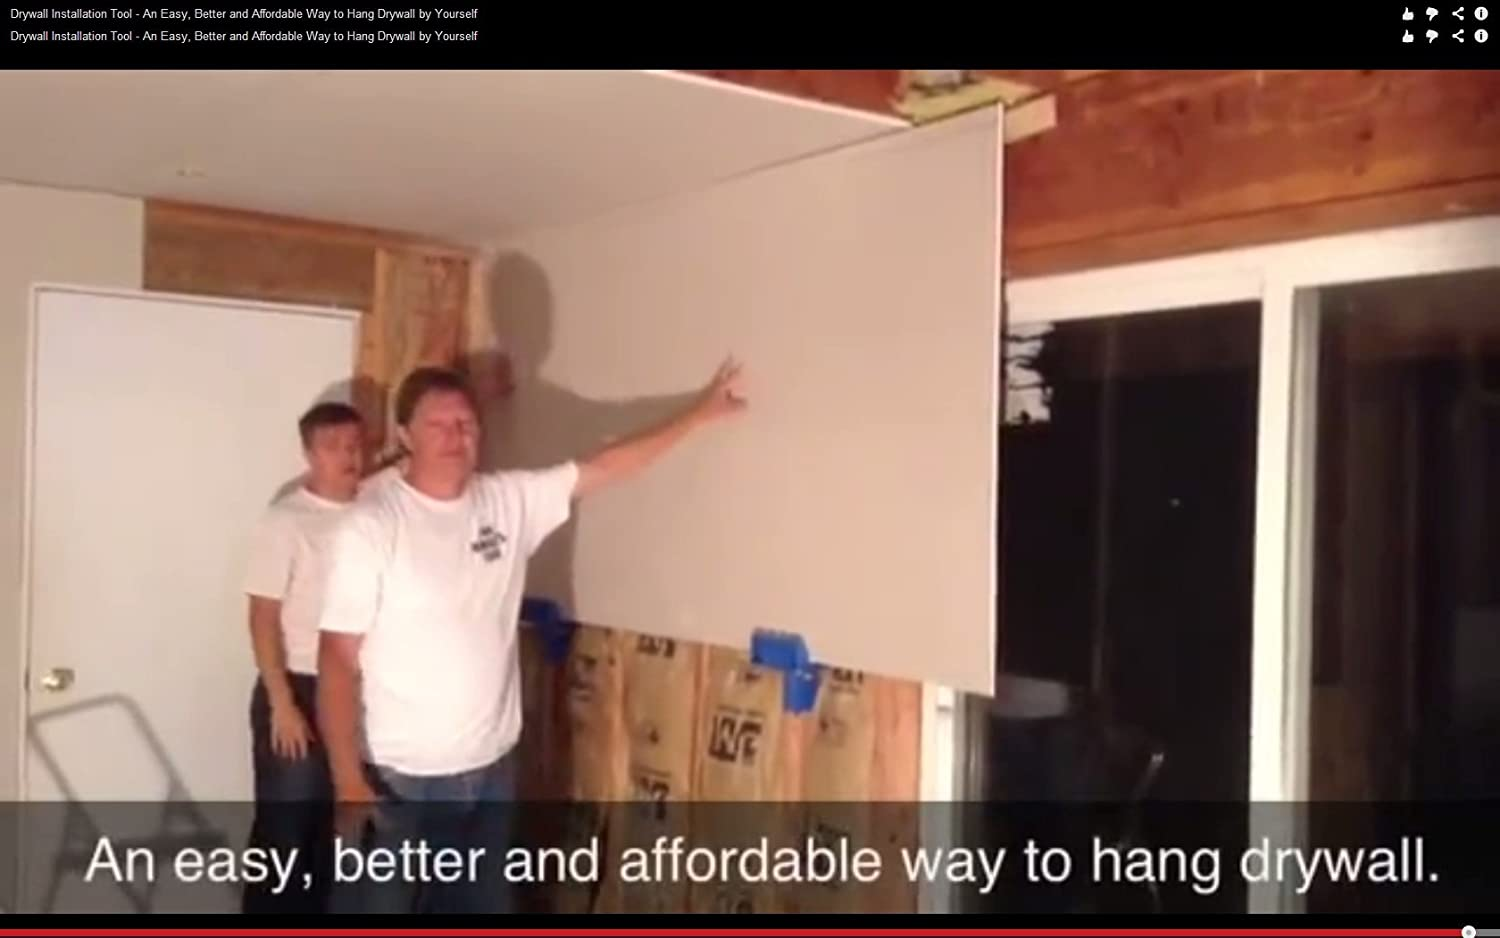 How to hang drywall on walls - How To Hang Drywall On Walls 22